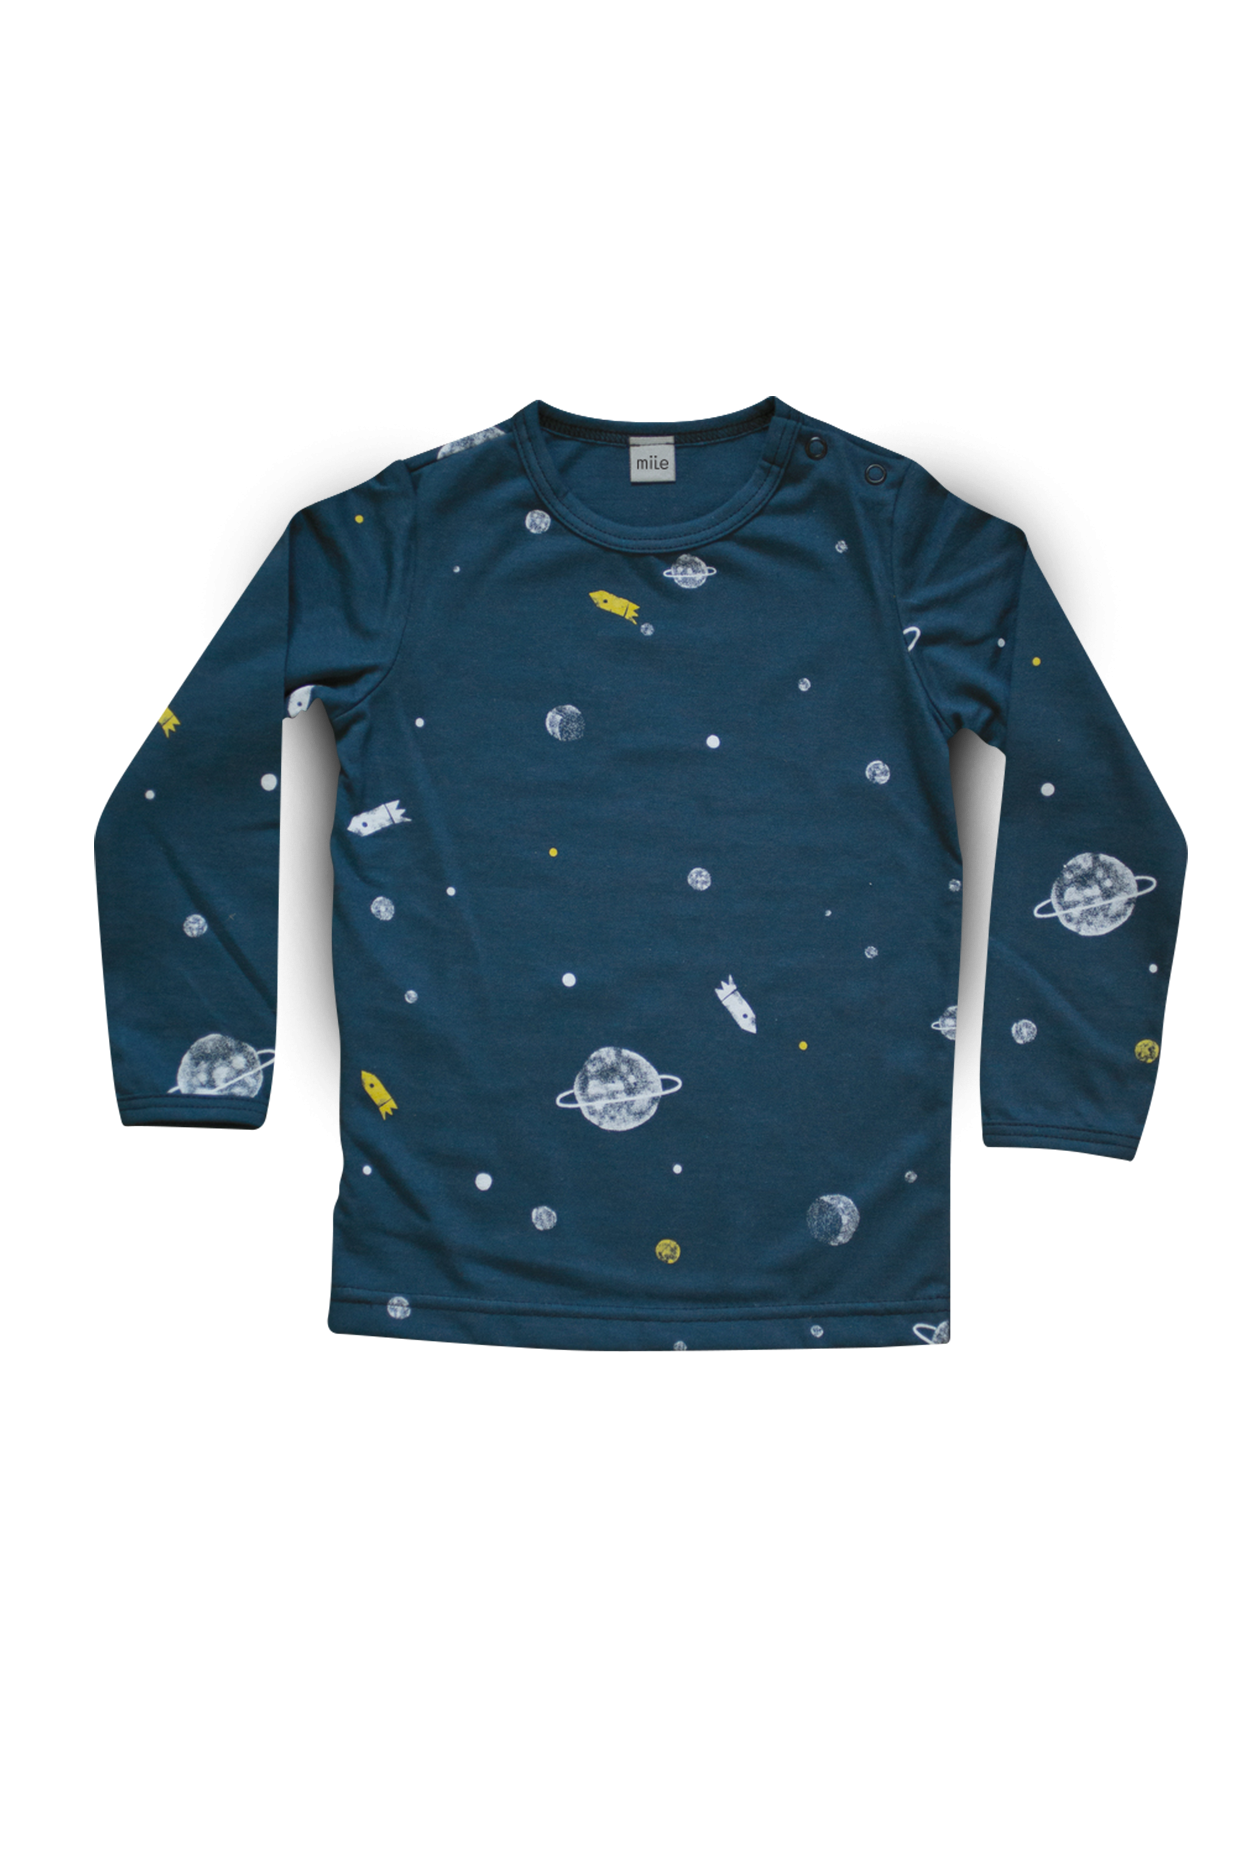 Long-sleeved T-shirt - Universe t-shirts long sleeve